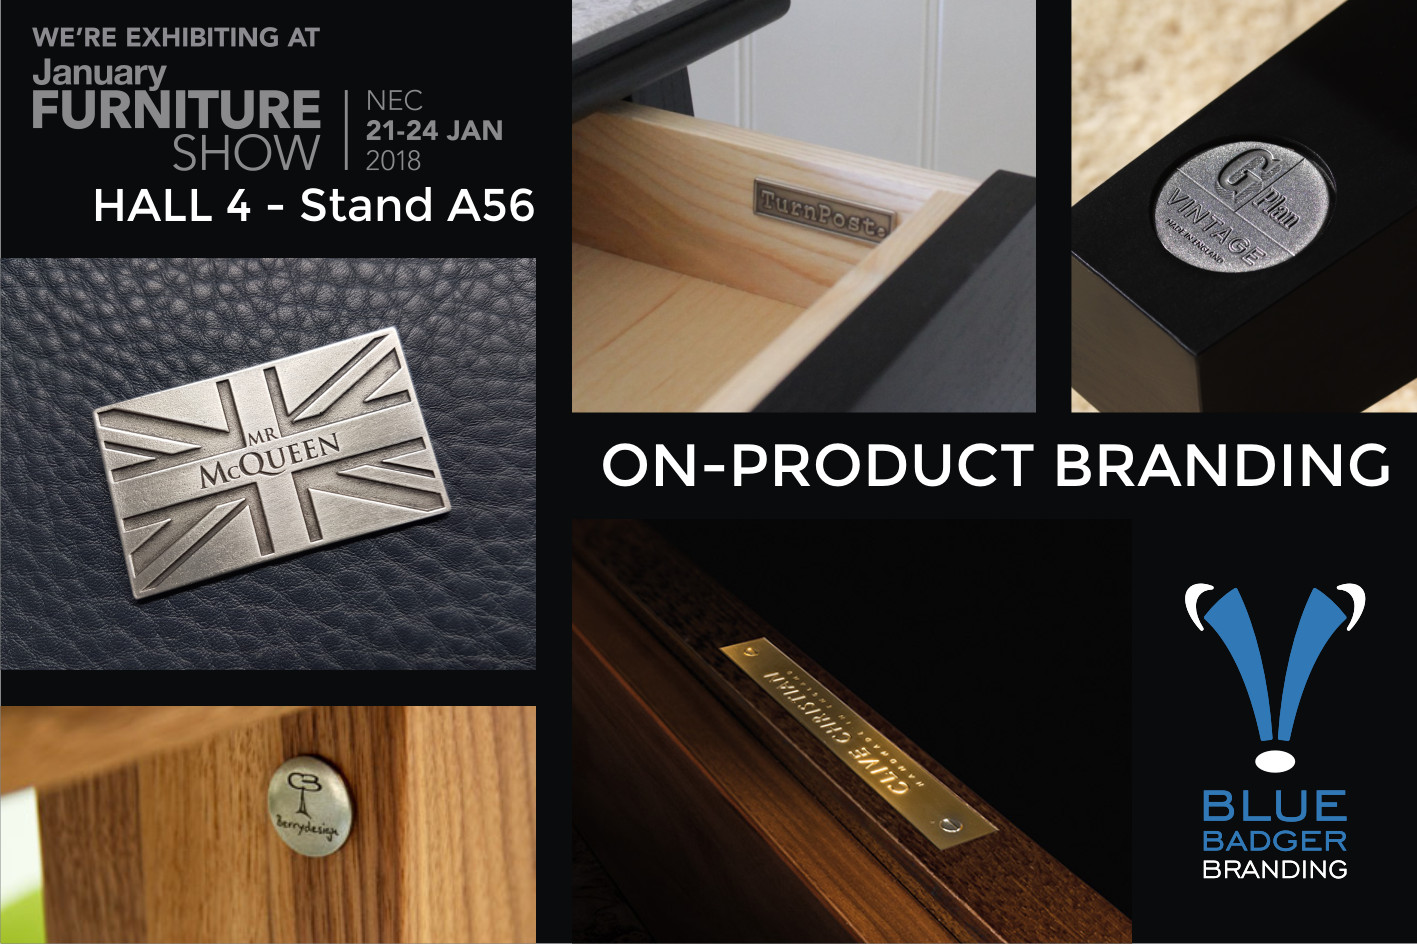 Blue Badger Branding Metal On-Product Branding Badges January Furniture Show 2018